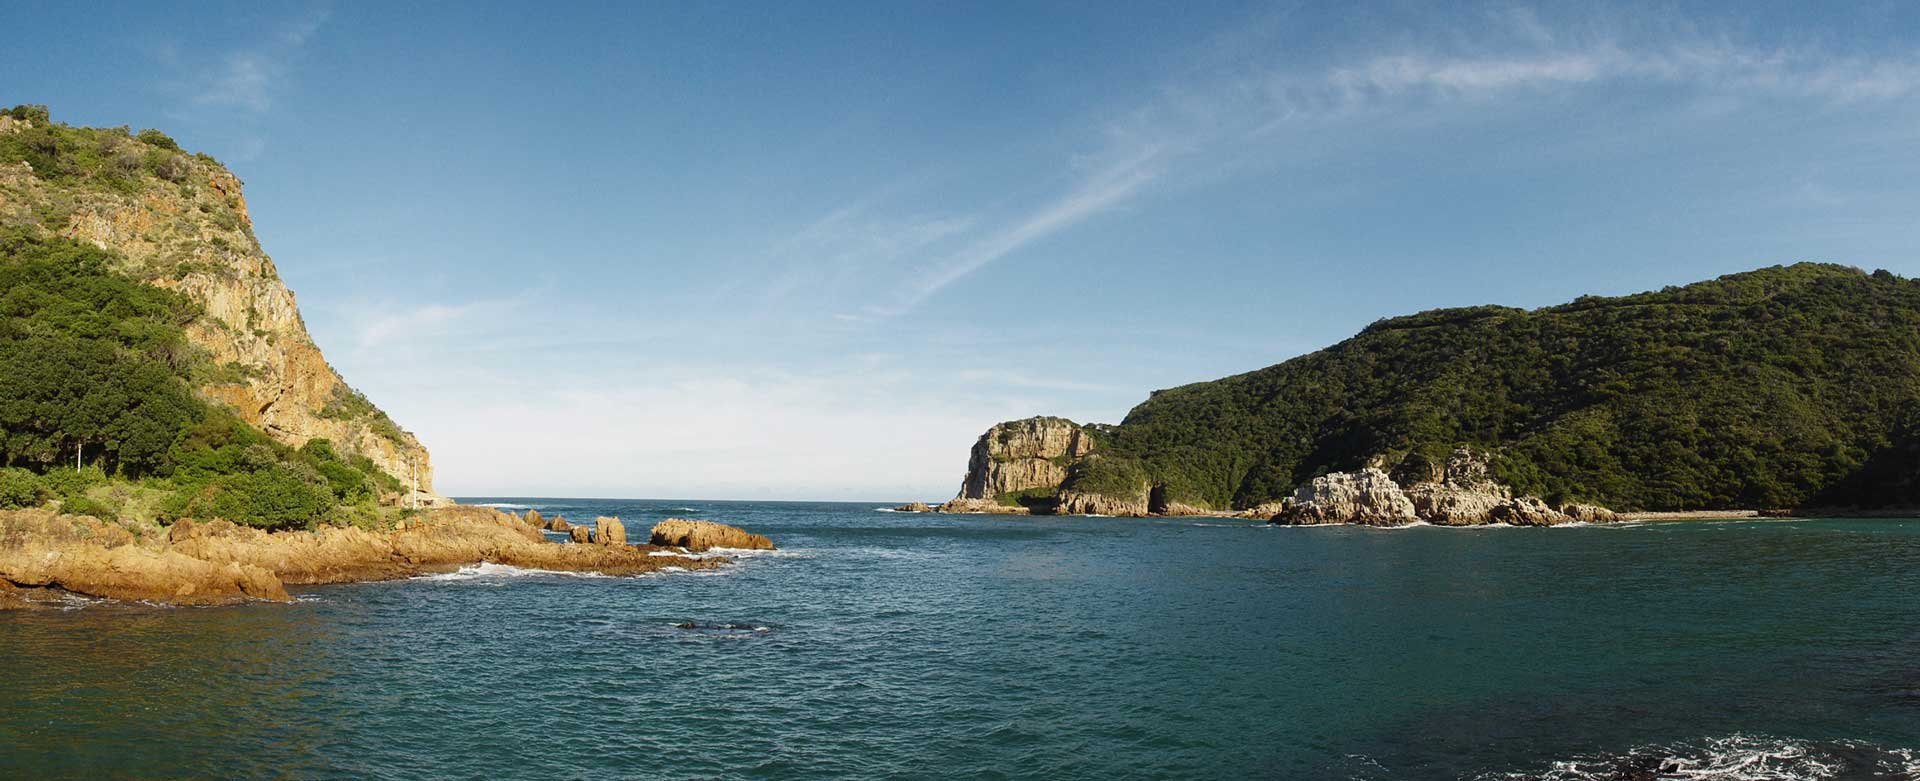 Knysna2__by__Damien-du-Toit-coda__Flickr